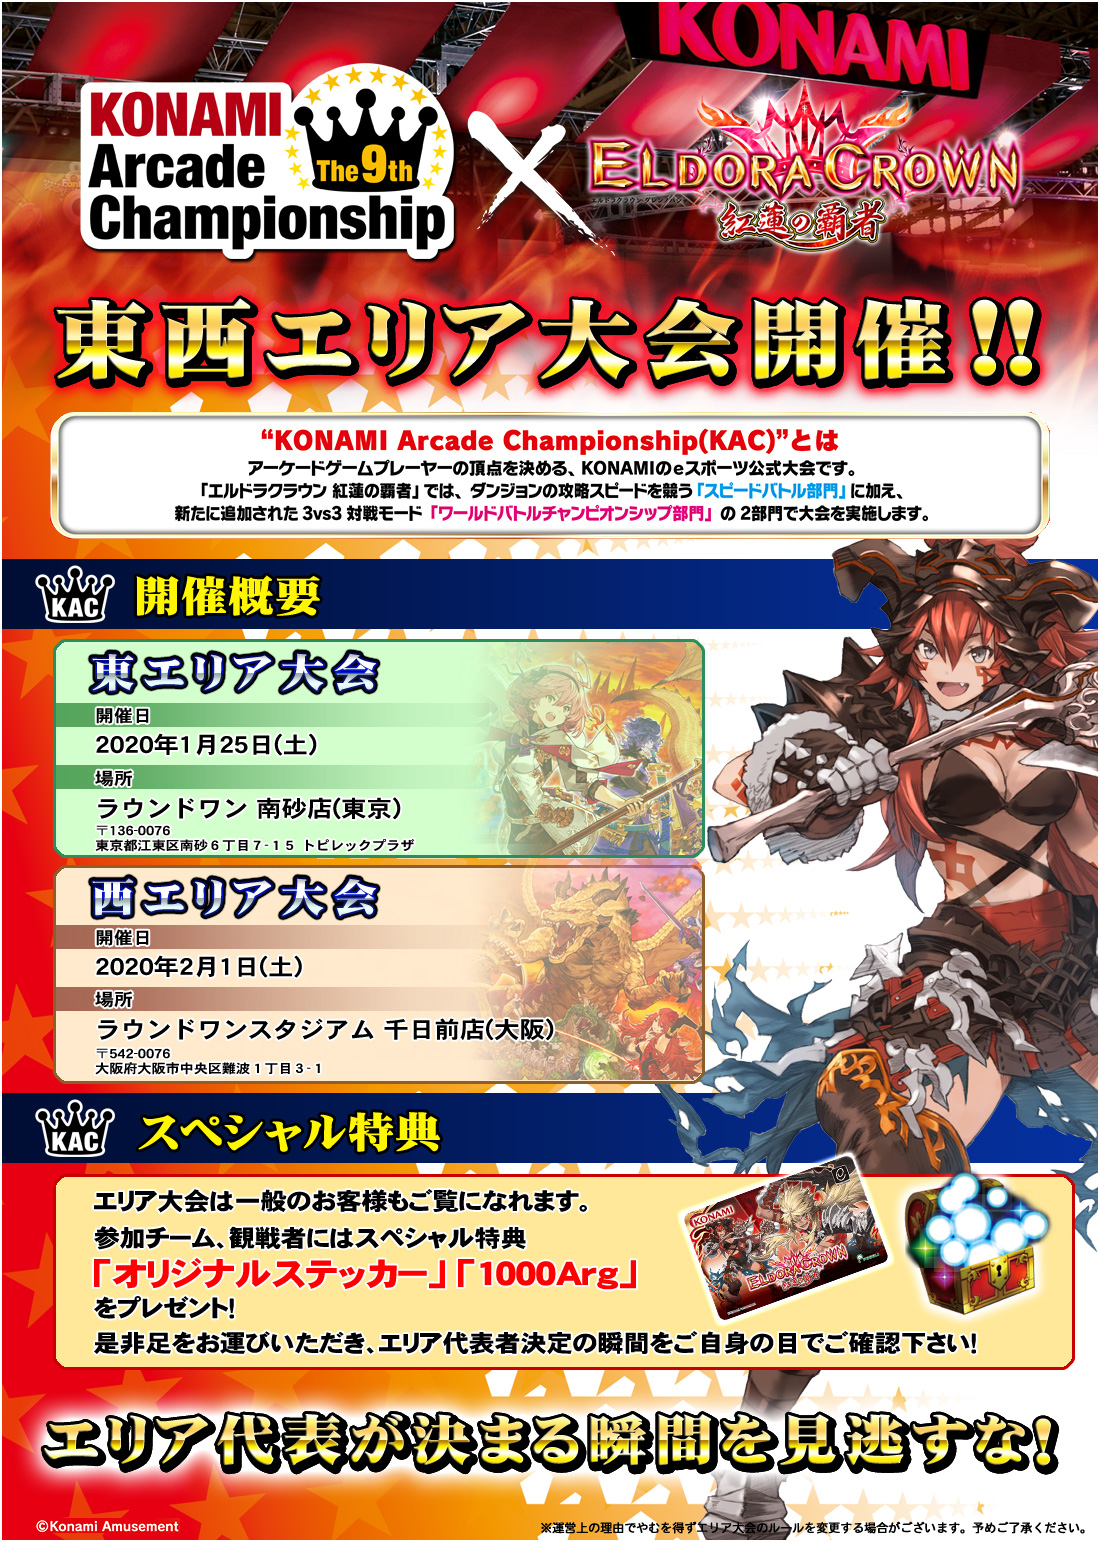 「The 9th KONAMI Arcade Championship」東西エリア大会開催!